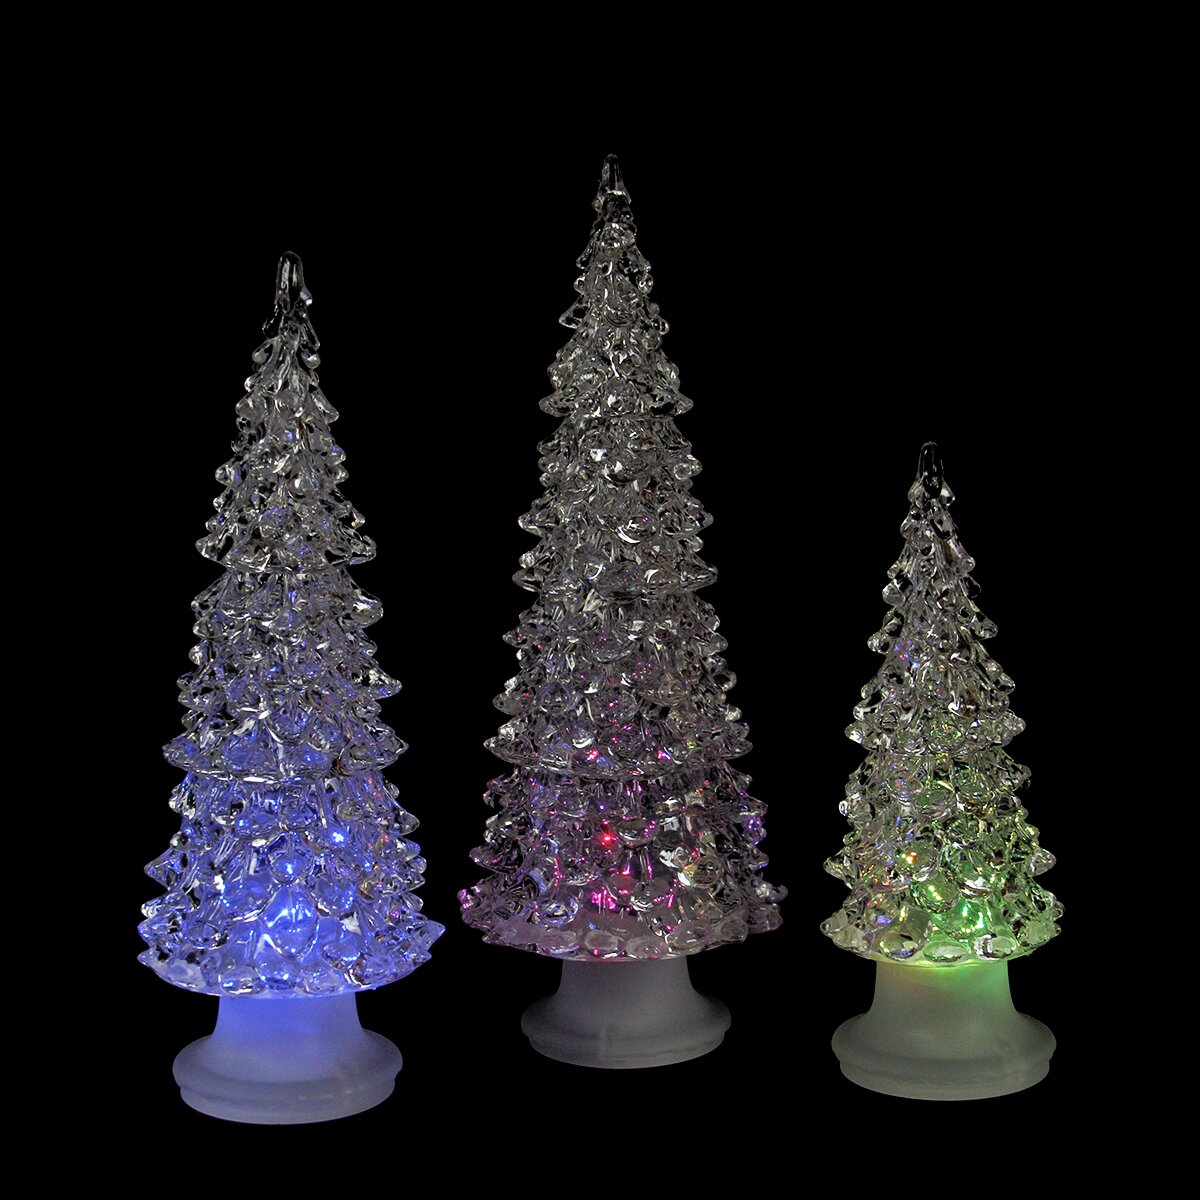 Small Battery Operated Christmas Tree: Icy Crystal 3 Piece LED Christmas Trees Battery Operated